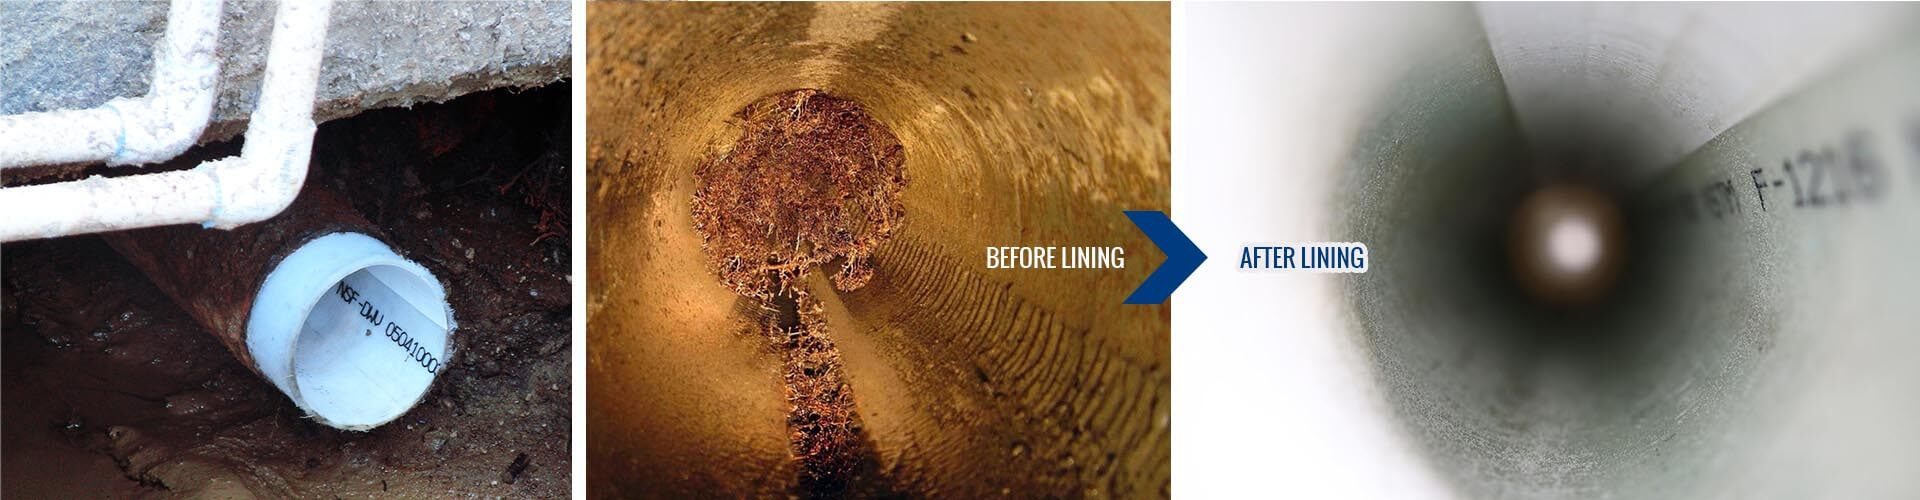 Trenchless sewer repair banner image featuring before and after service images for trenchless sewer repair